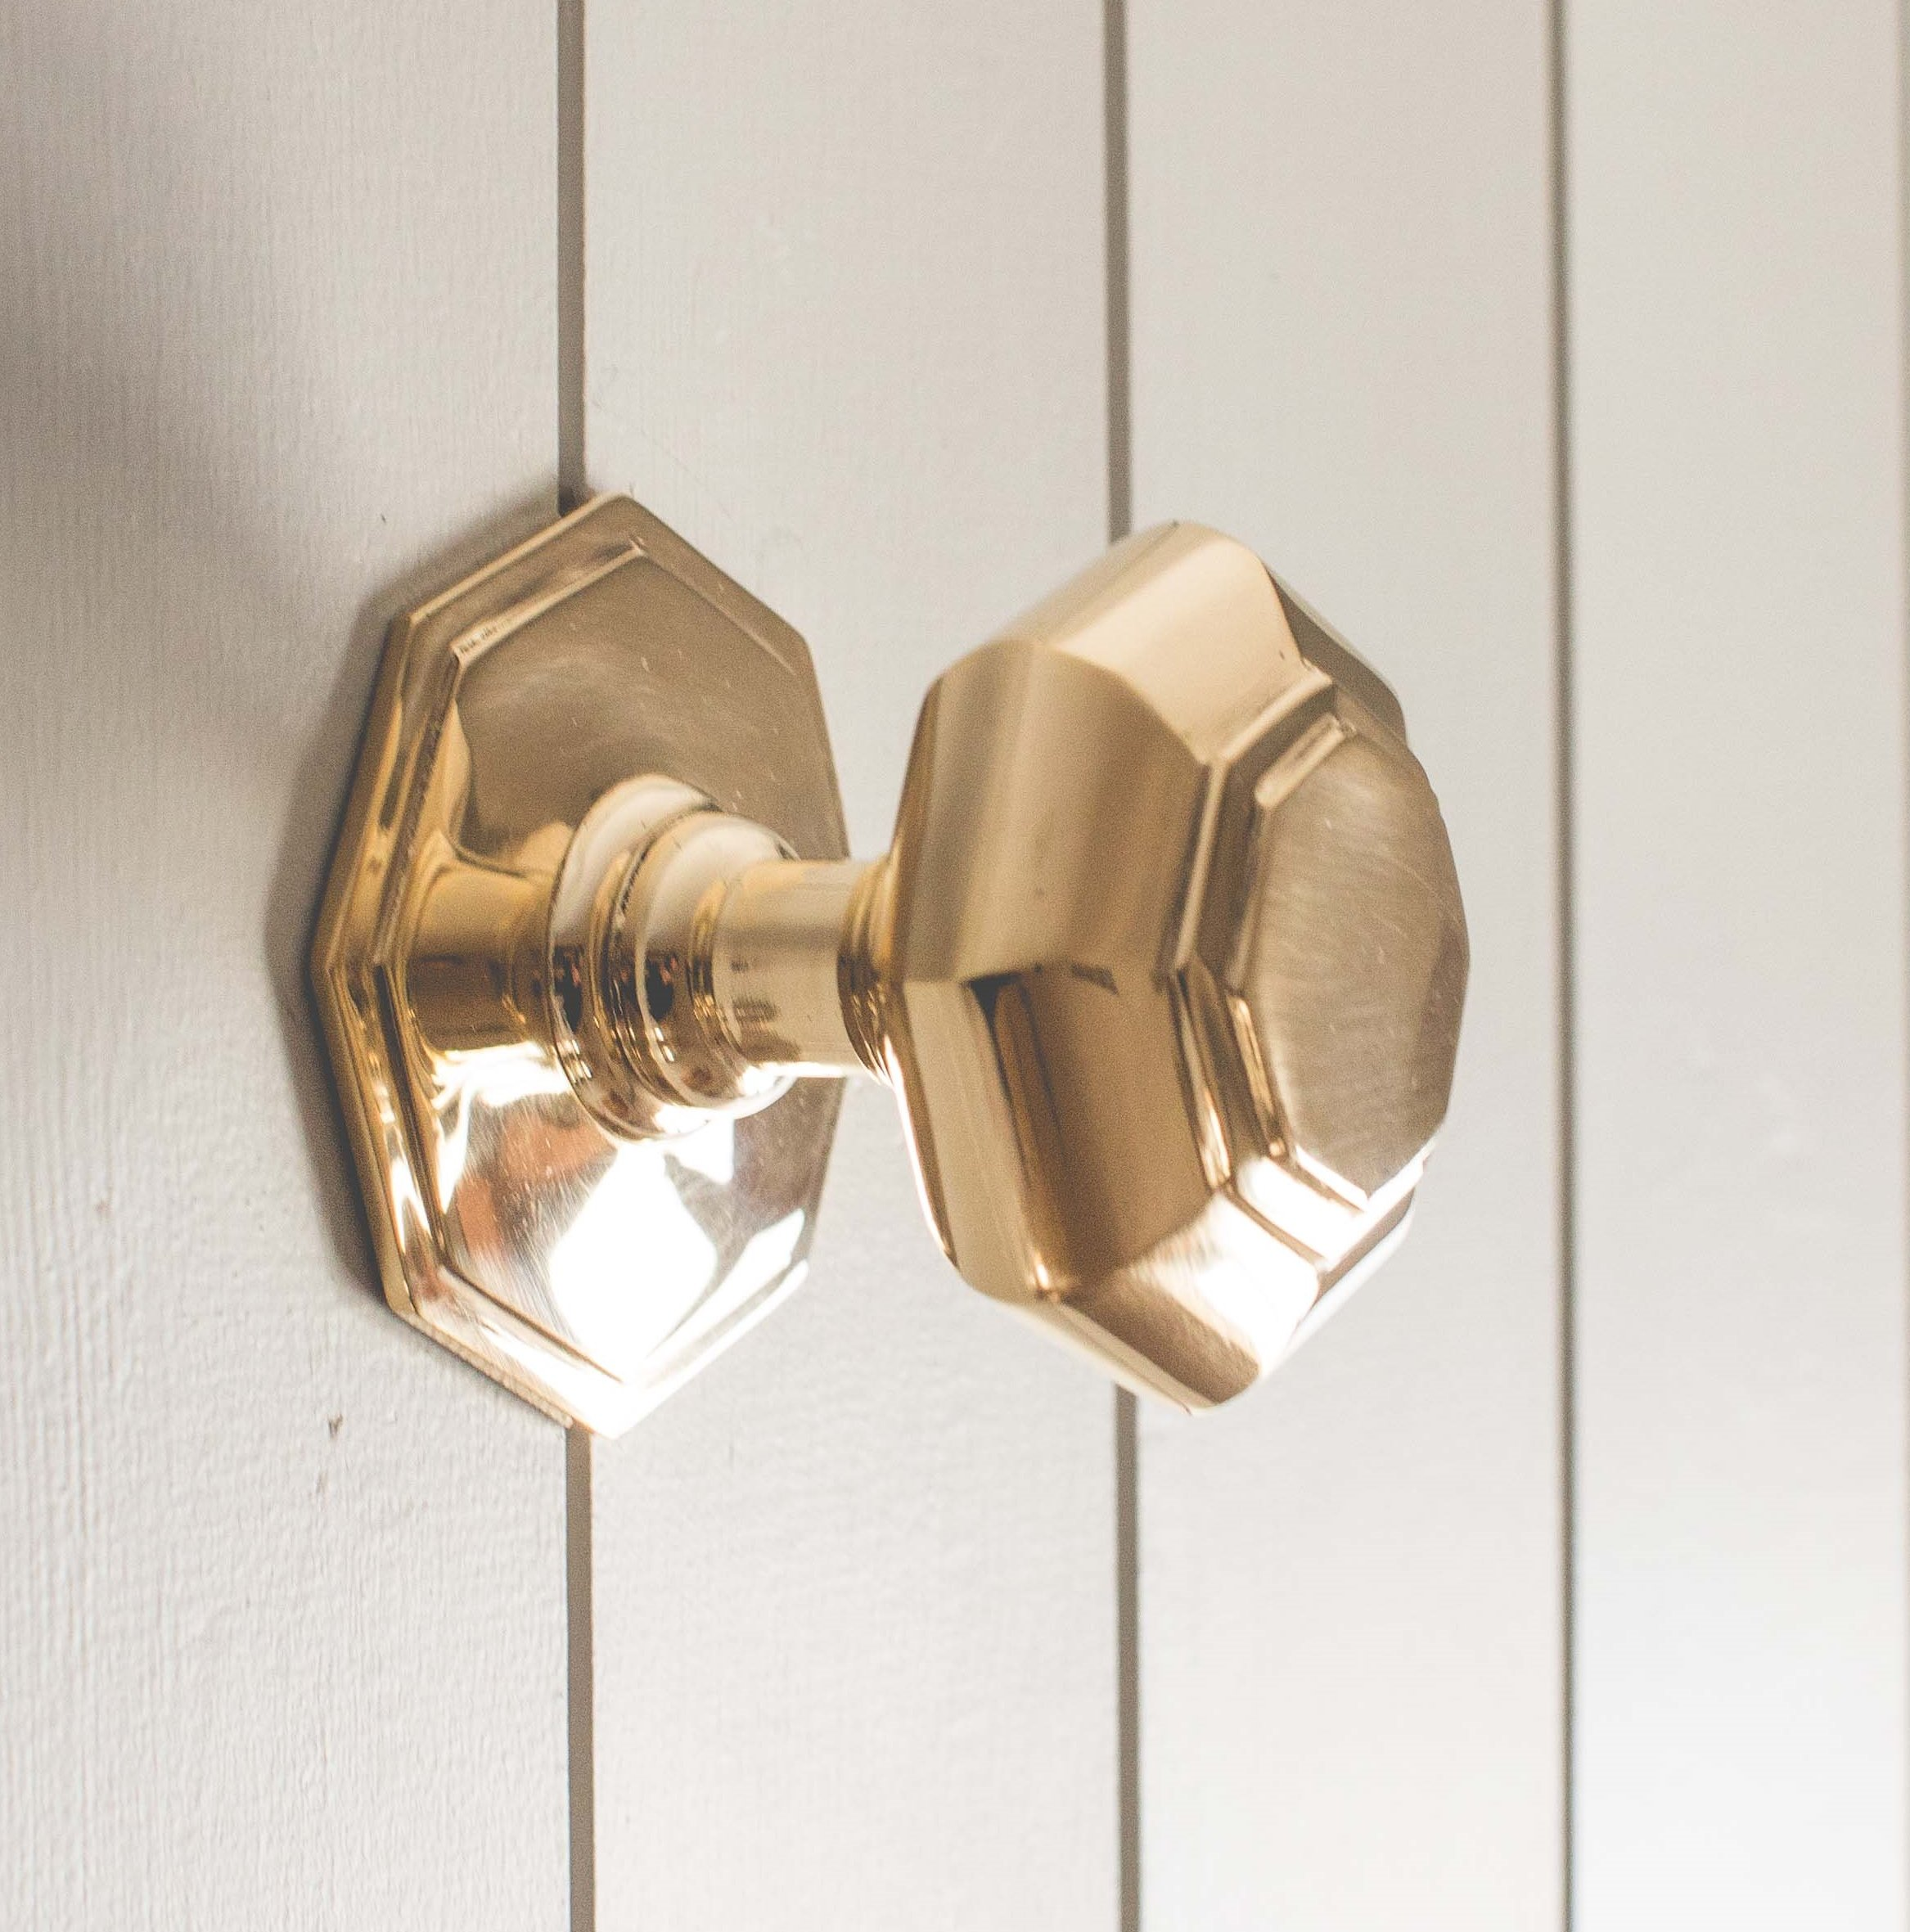 Octagonal Door Pull - Brass